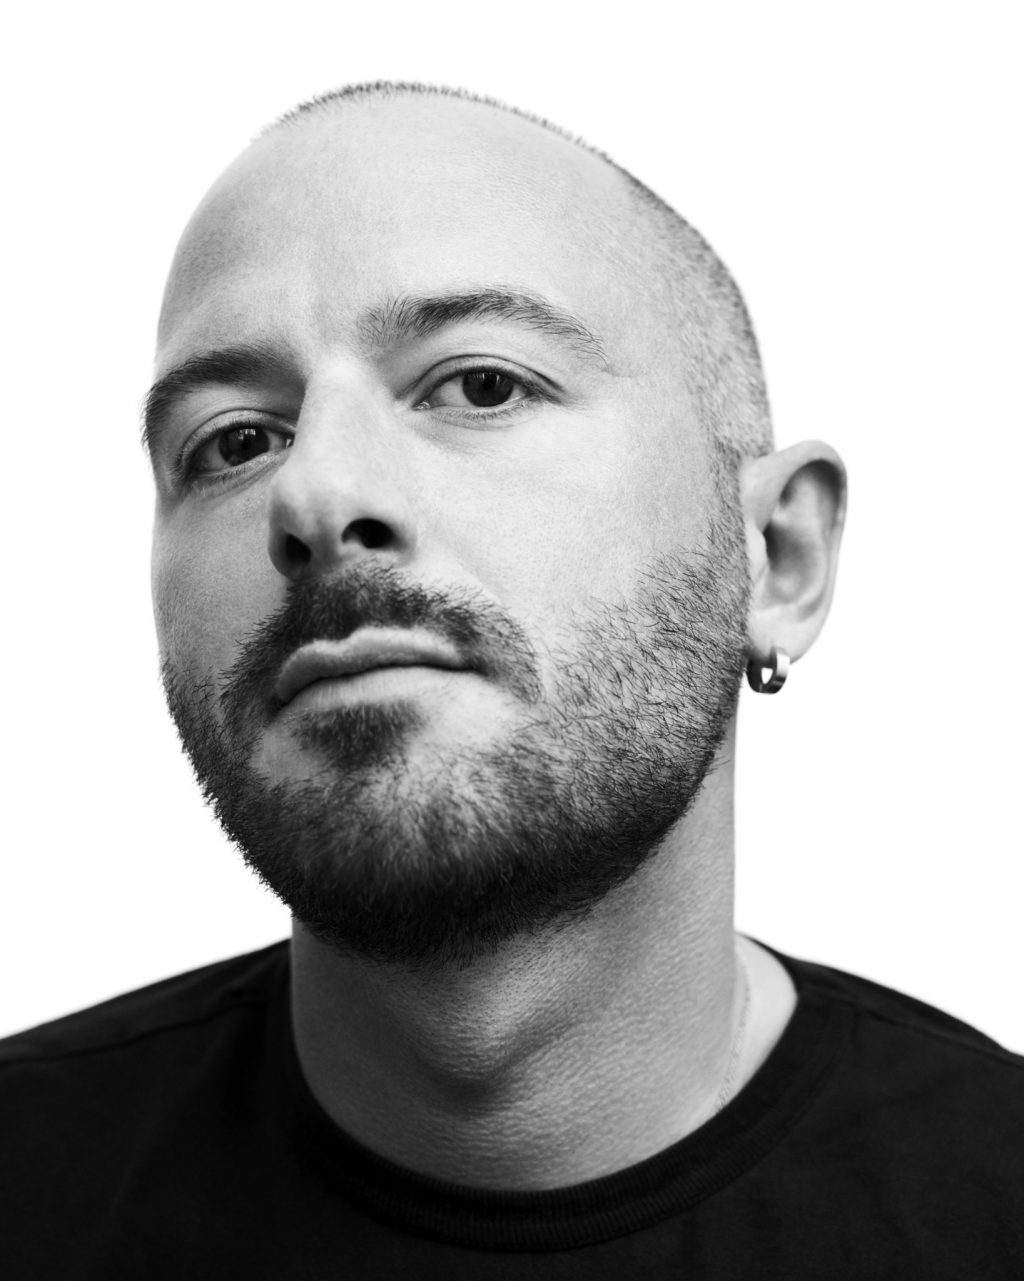 demna-gvasalia-courtesy-willy-vanderperre